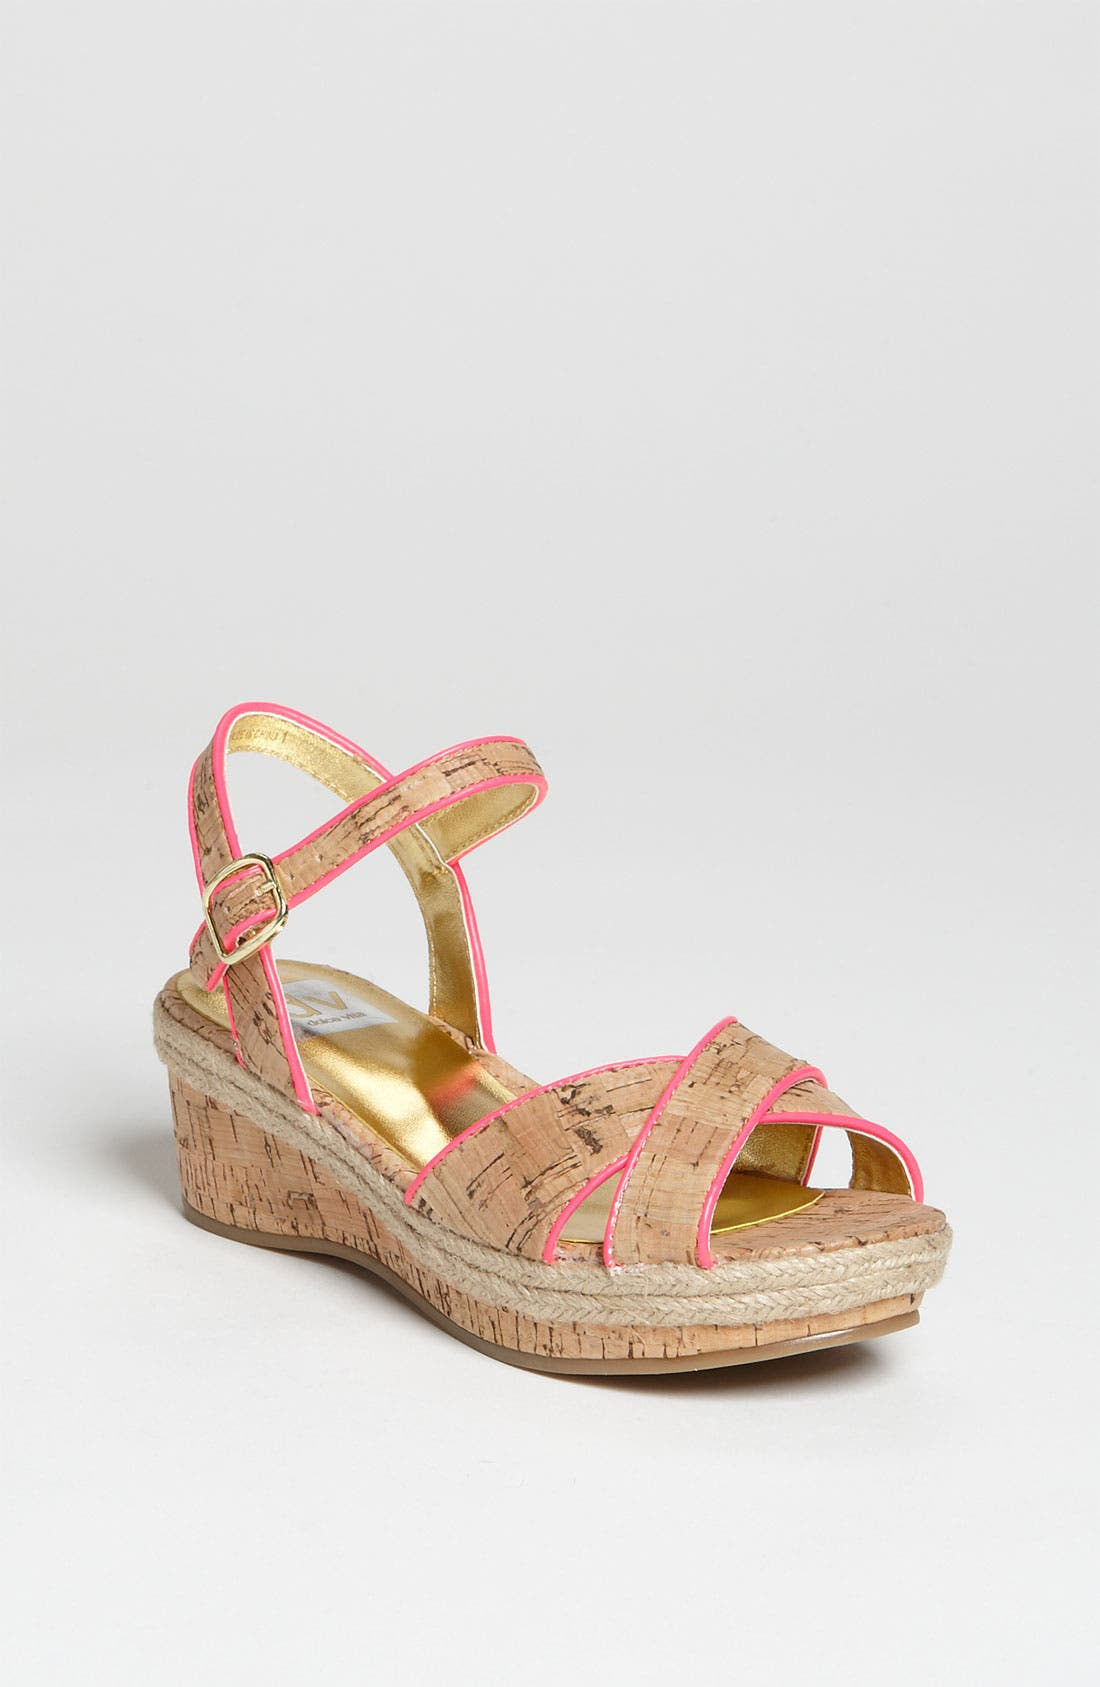 Main Image - DV by Dolce Vita 'Callie' Wedge Sandal (Toddler, Little Kid & Big Kid)